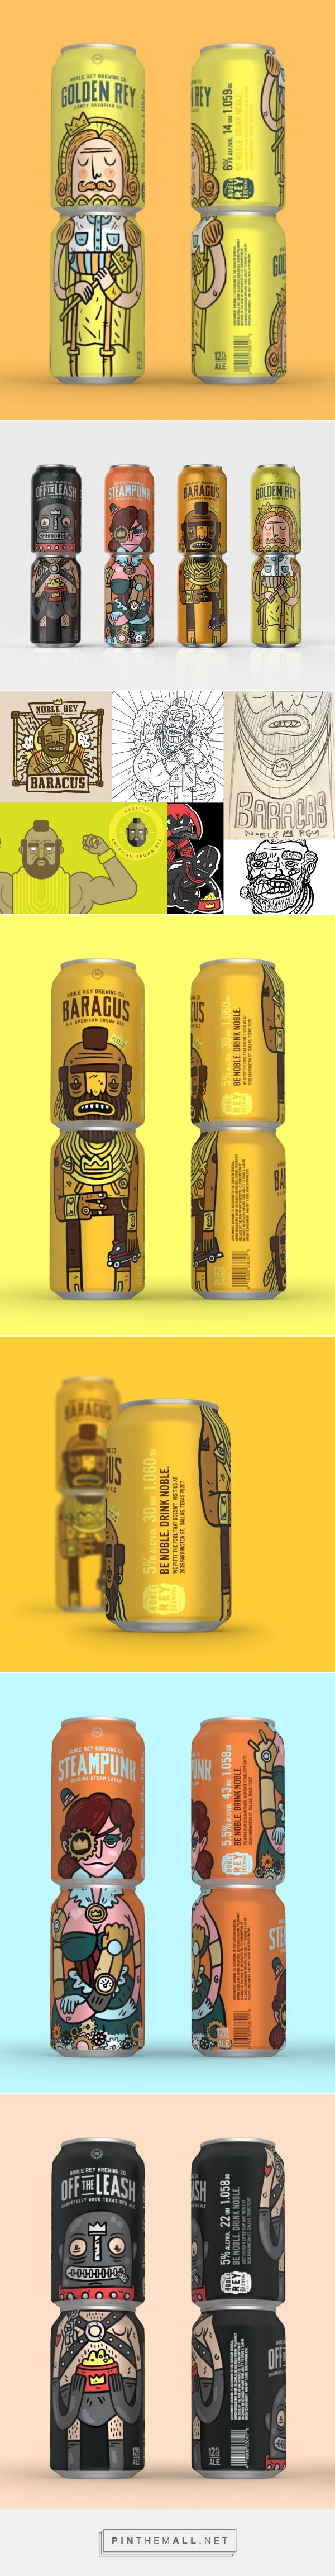 Packaging and branding for Noble Rey Brewing Co. via Oh Beautiful Beer by Magnificent Beard curated by Packaging Diva PD. Ownable stacking system that creates a full body character when the cans are stacked two tall and are hard to miss when you're browsing the beer cooler…or double fisting.